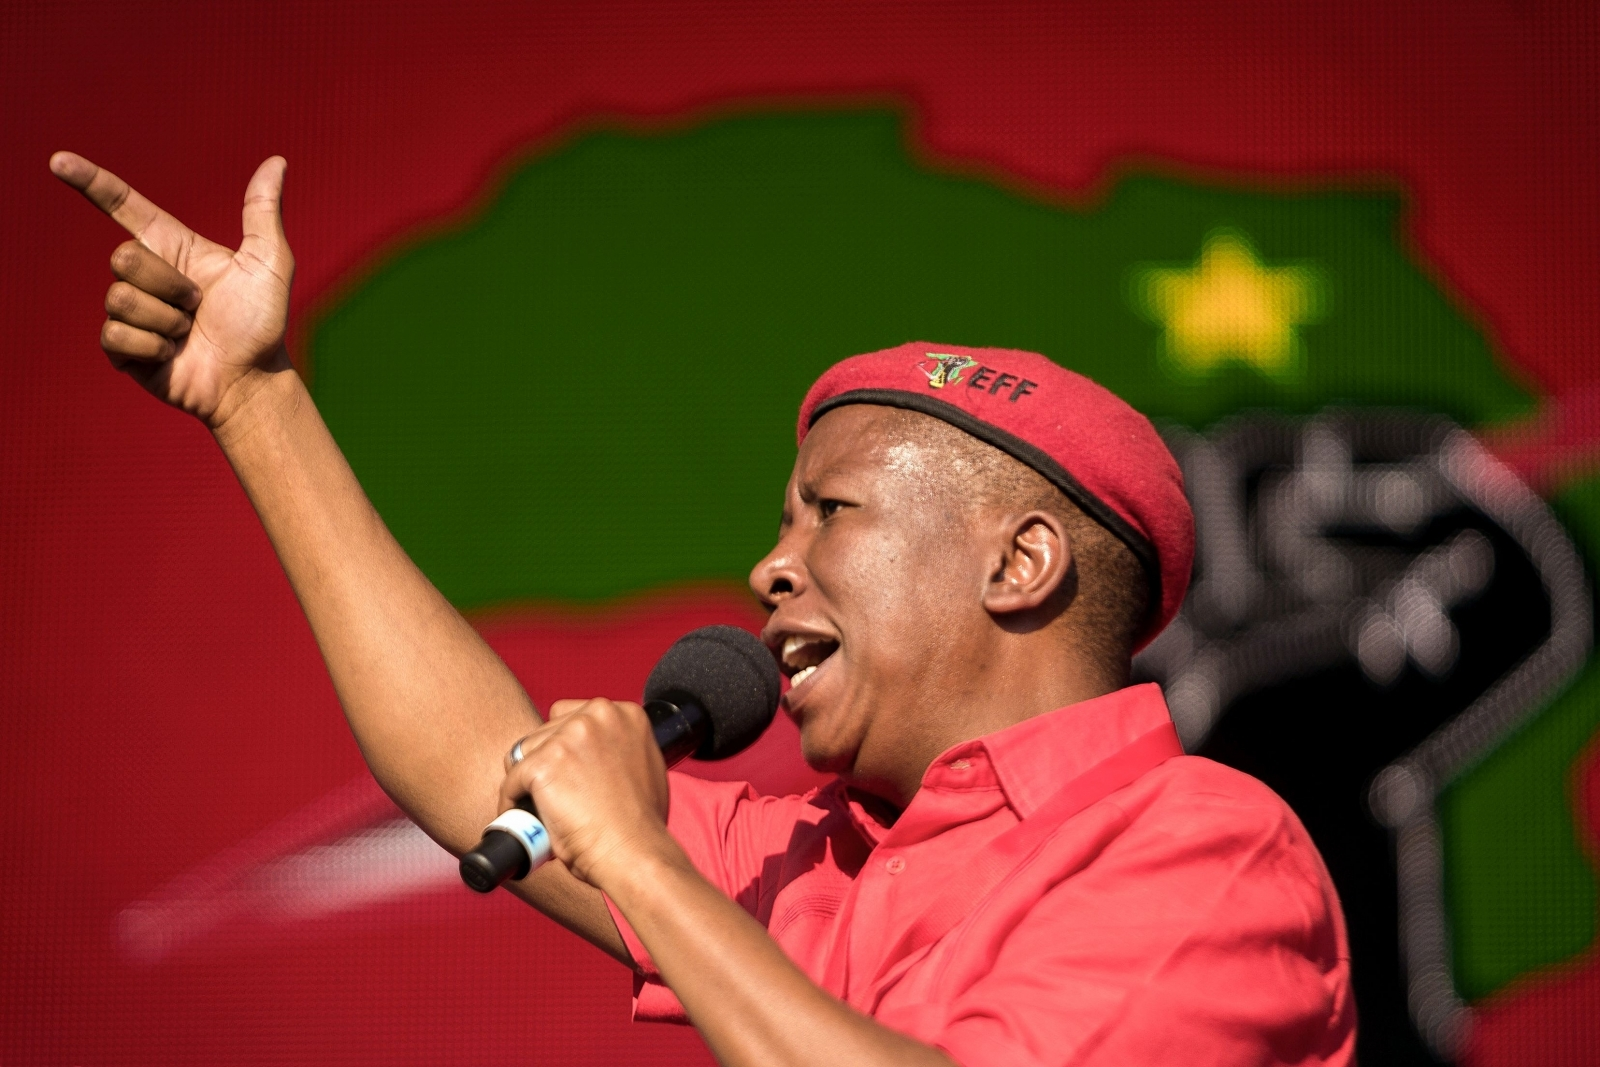 """julius malema Eff leader julius malema is yet to respond to questions about video footage that purportedly shows him discharging a """"firearm"""" on stage in east london."""